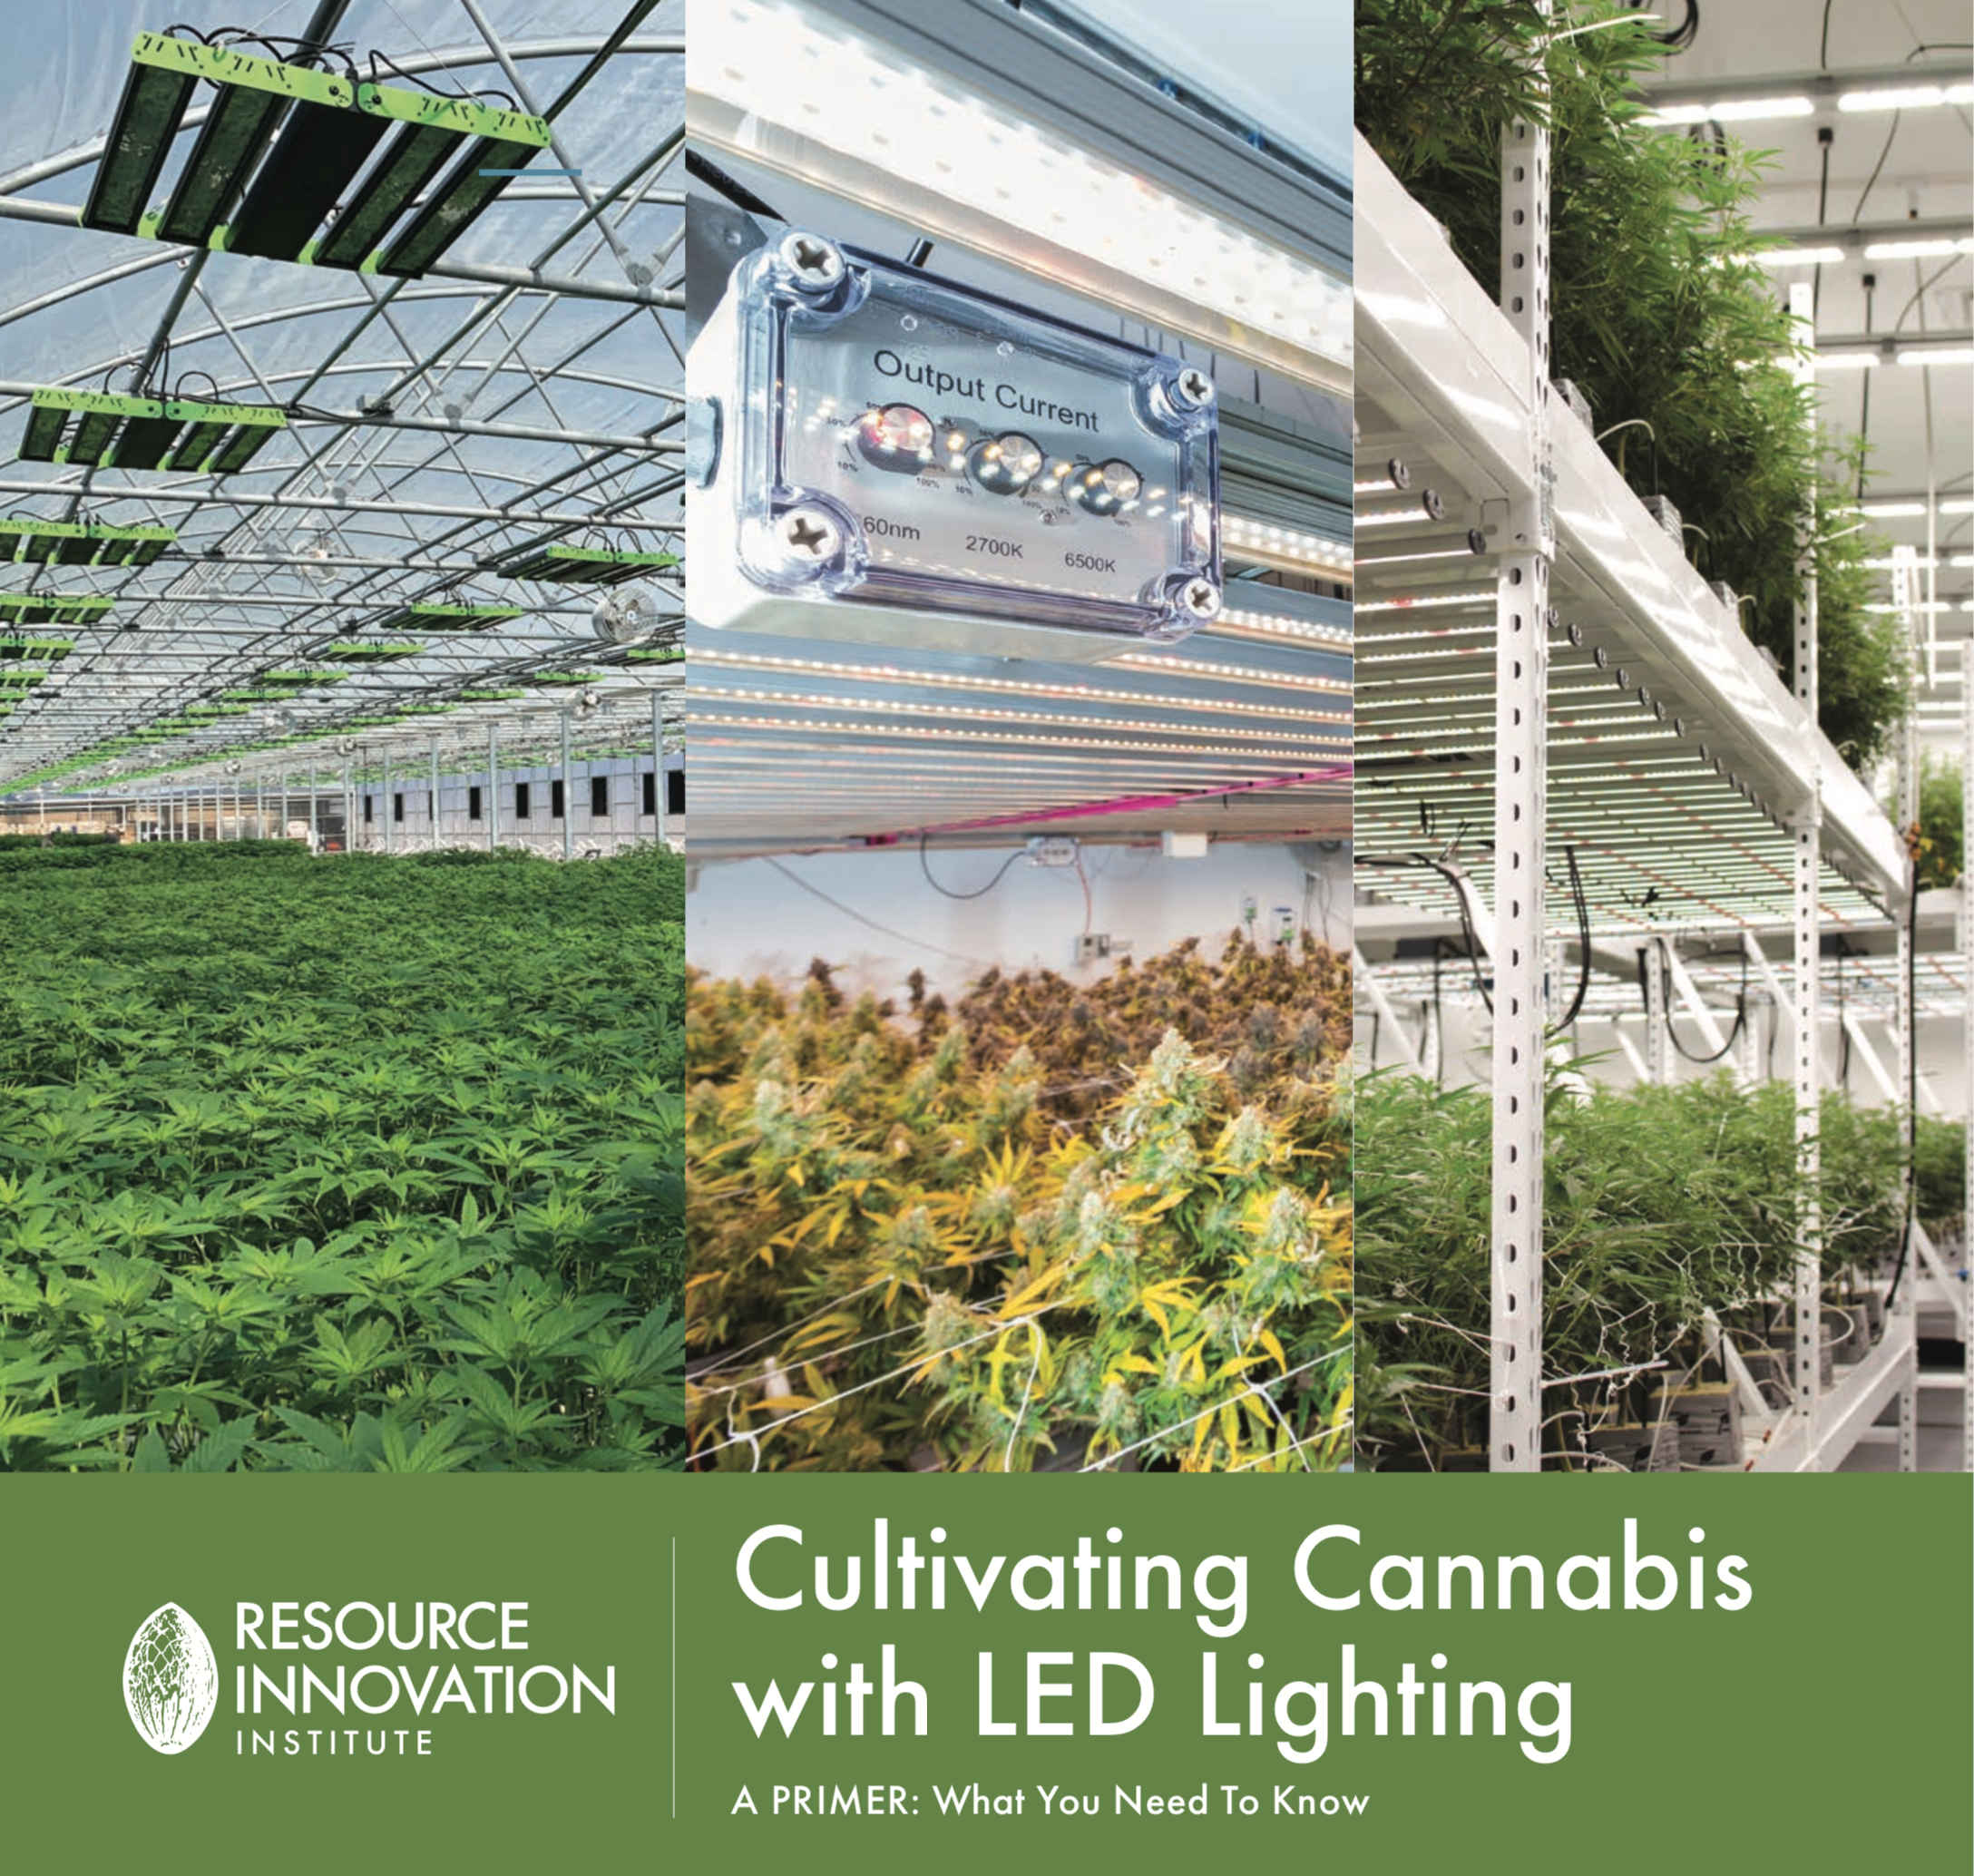 Resource Innovation Institute Releases Primer on LED Lighting